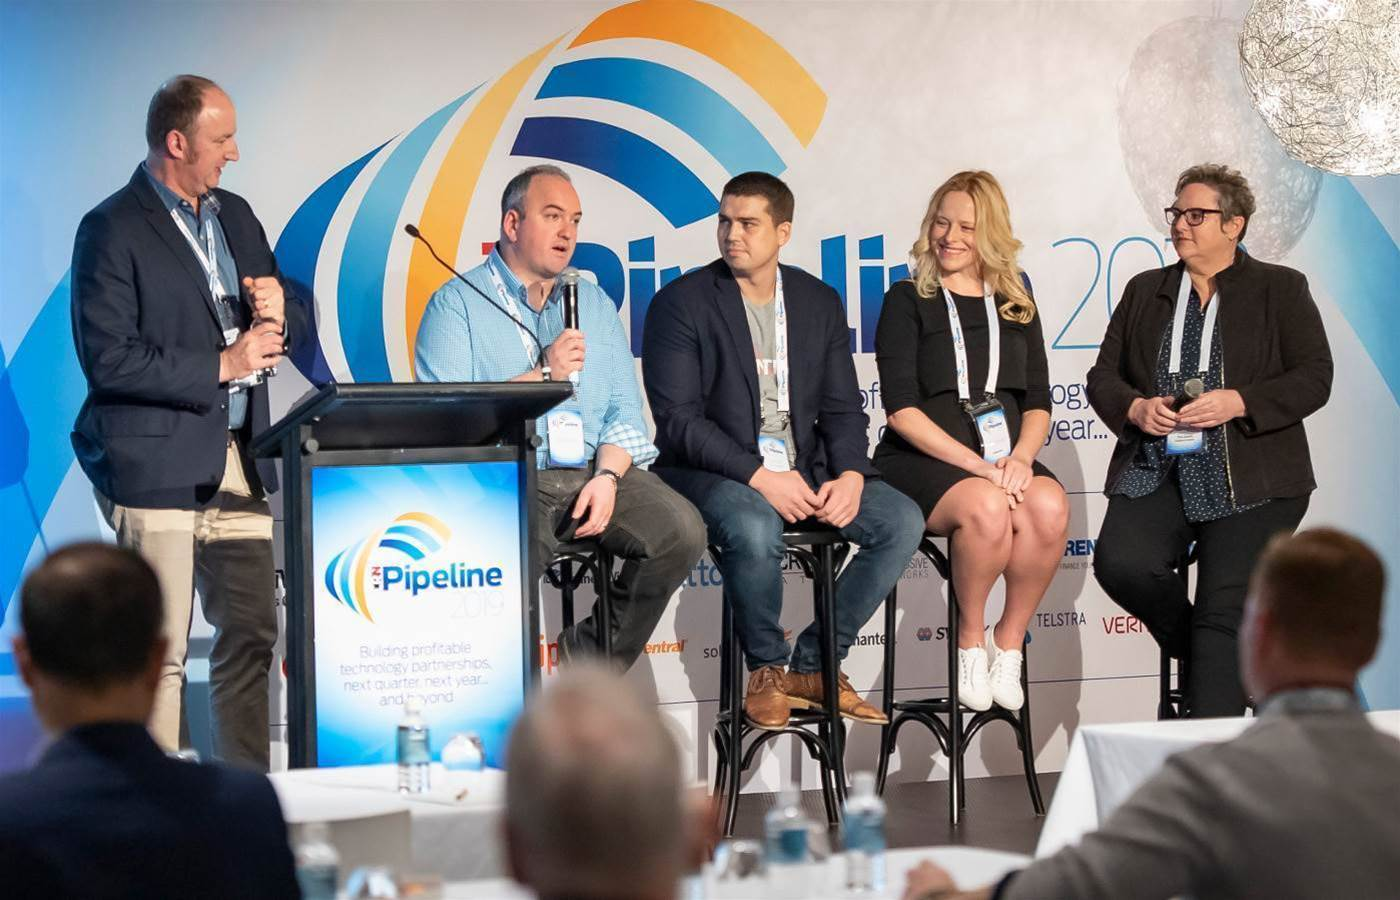 Who was spotted at CRN Pipeline Melbourne 2019?